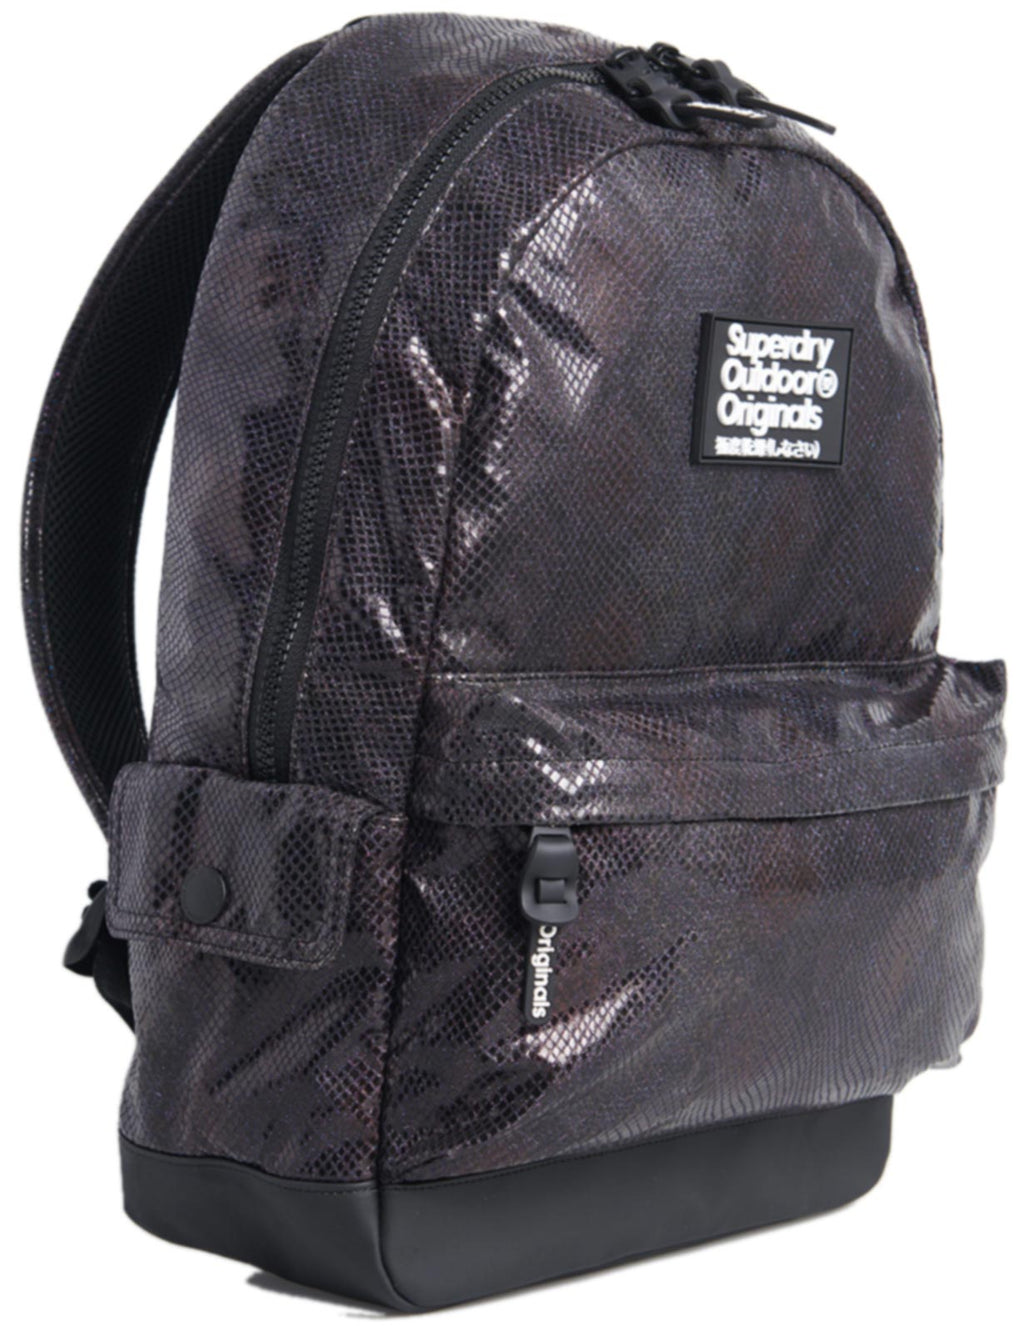 Superdry Glitter Scale Montana Backpack Bag Black